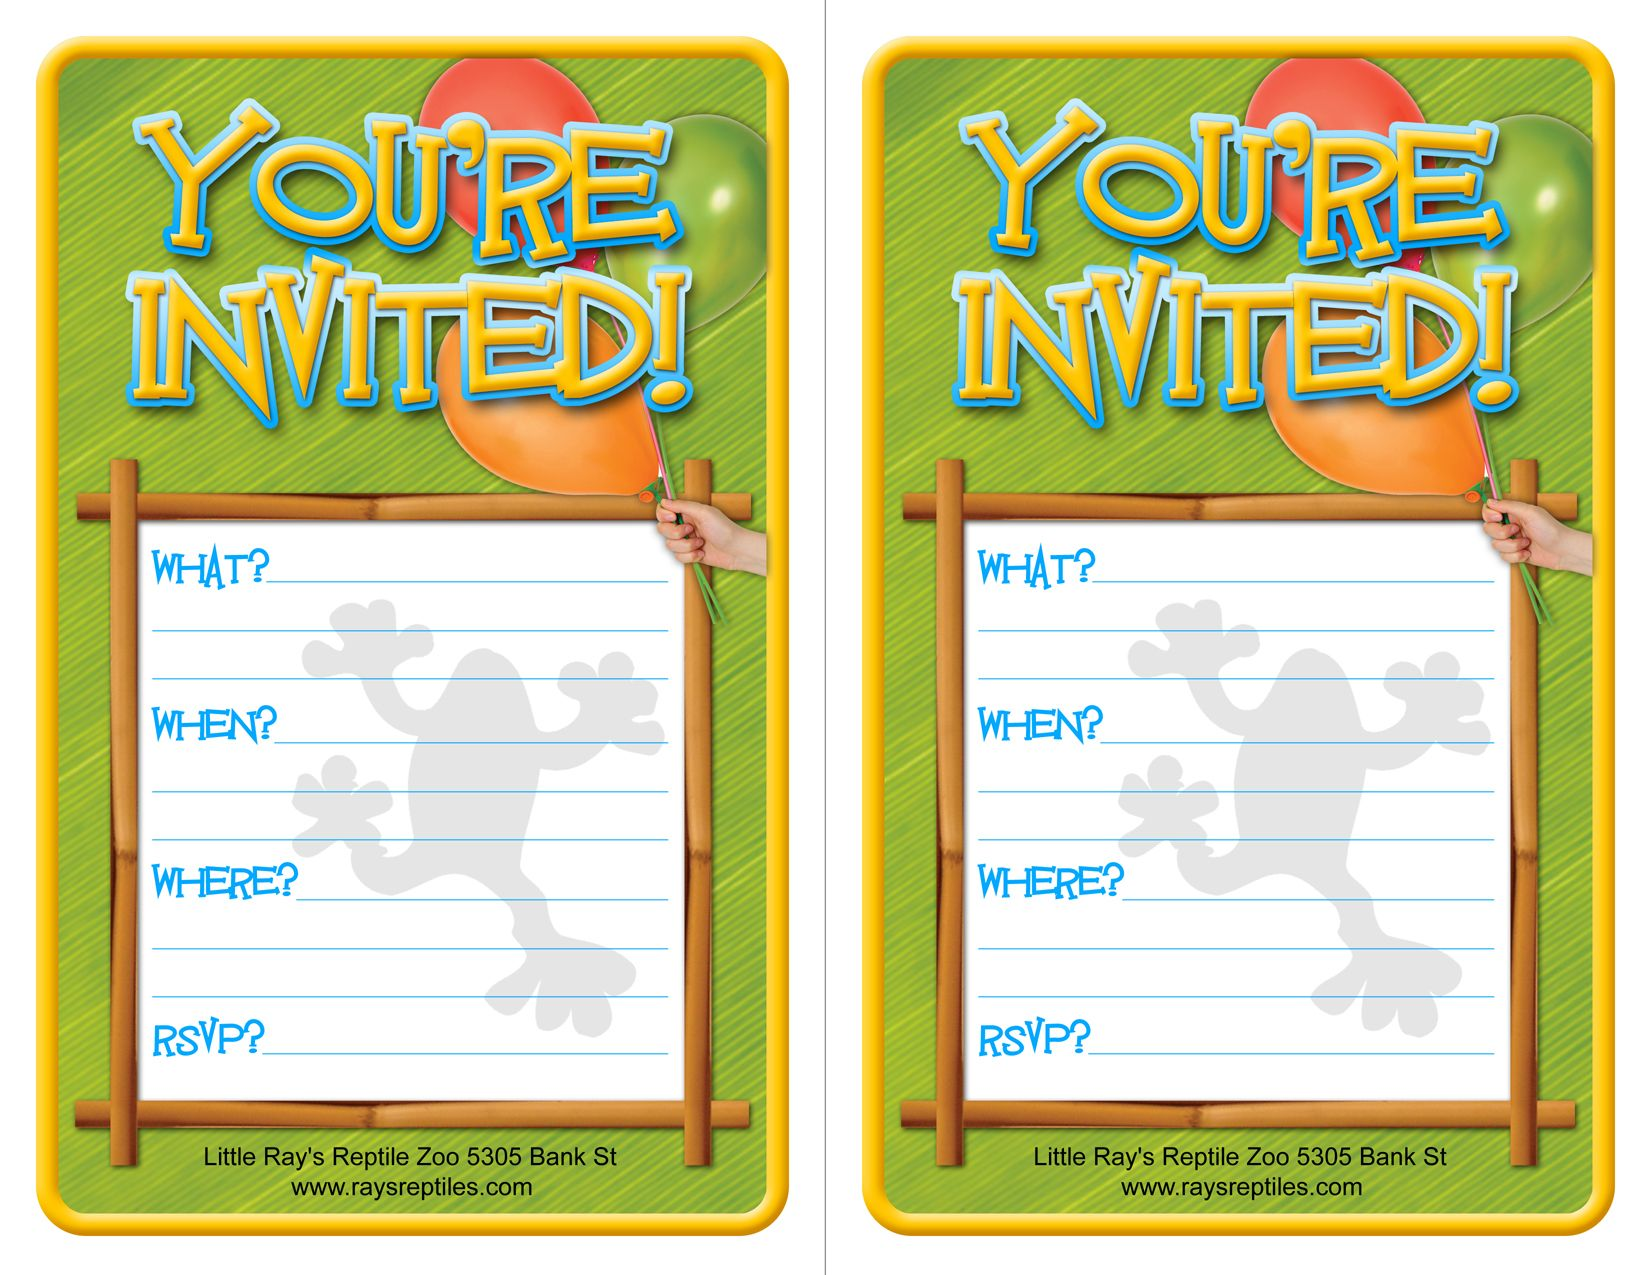 a8e9a57f05774369d1c2b23e7e429891 you are invited invitations items similar to party you're,You Re Invited Kids